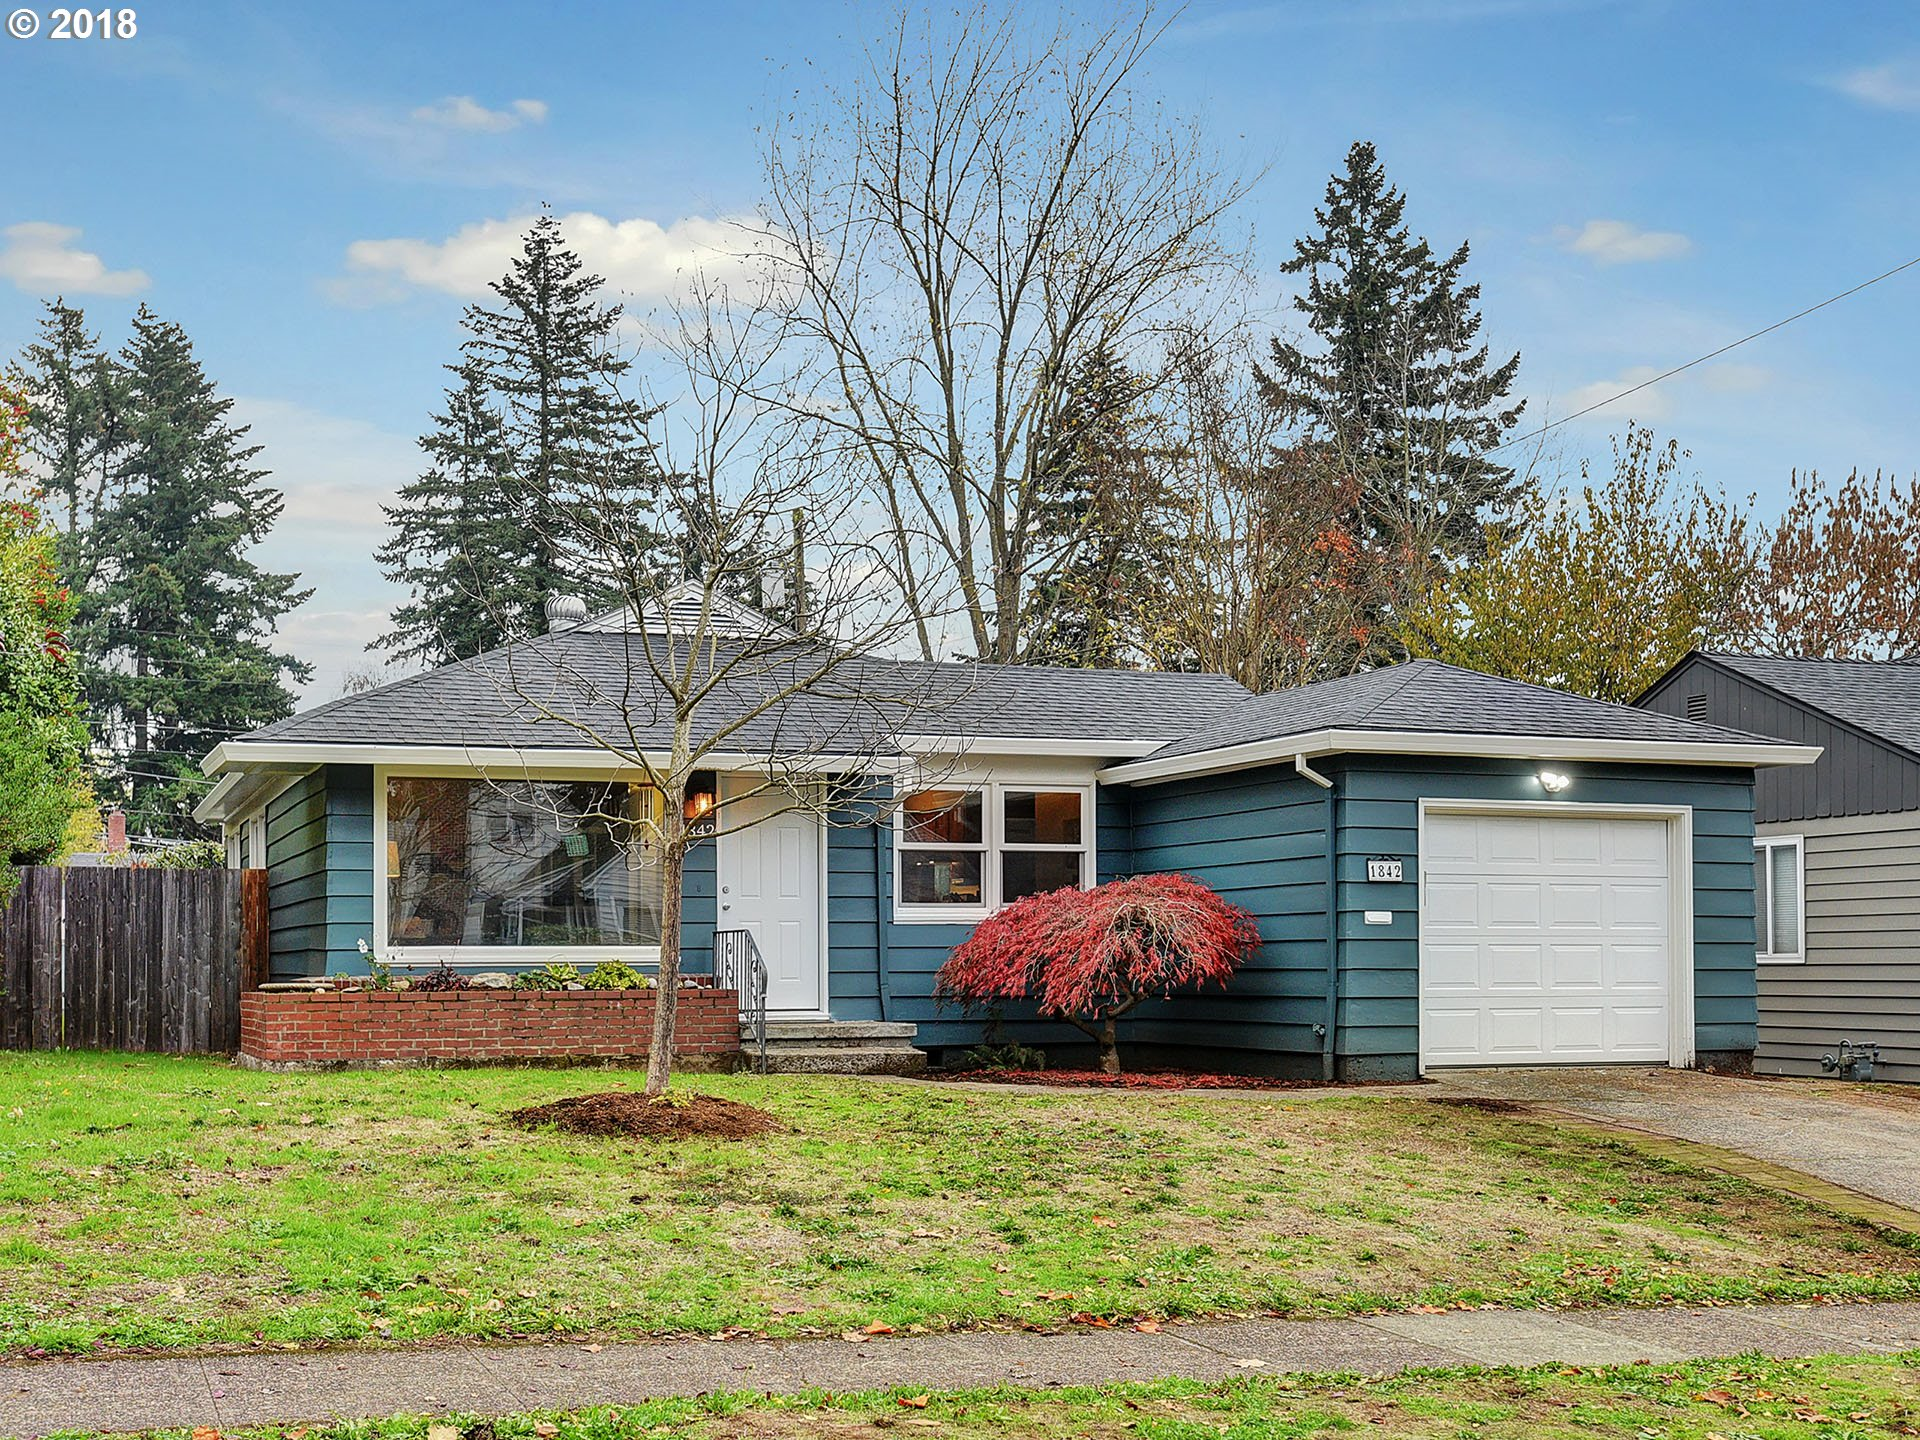 1188 sq. ft 3 bedrooms 1 bathrooms  House For Sale,Portland, OR